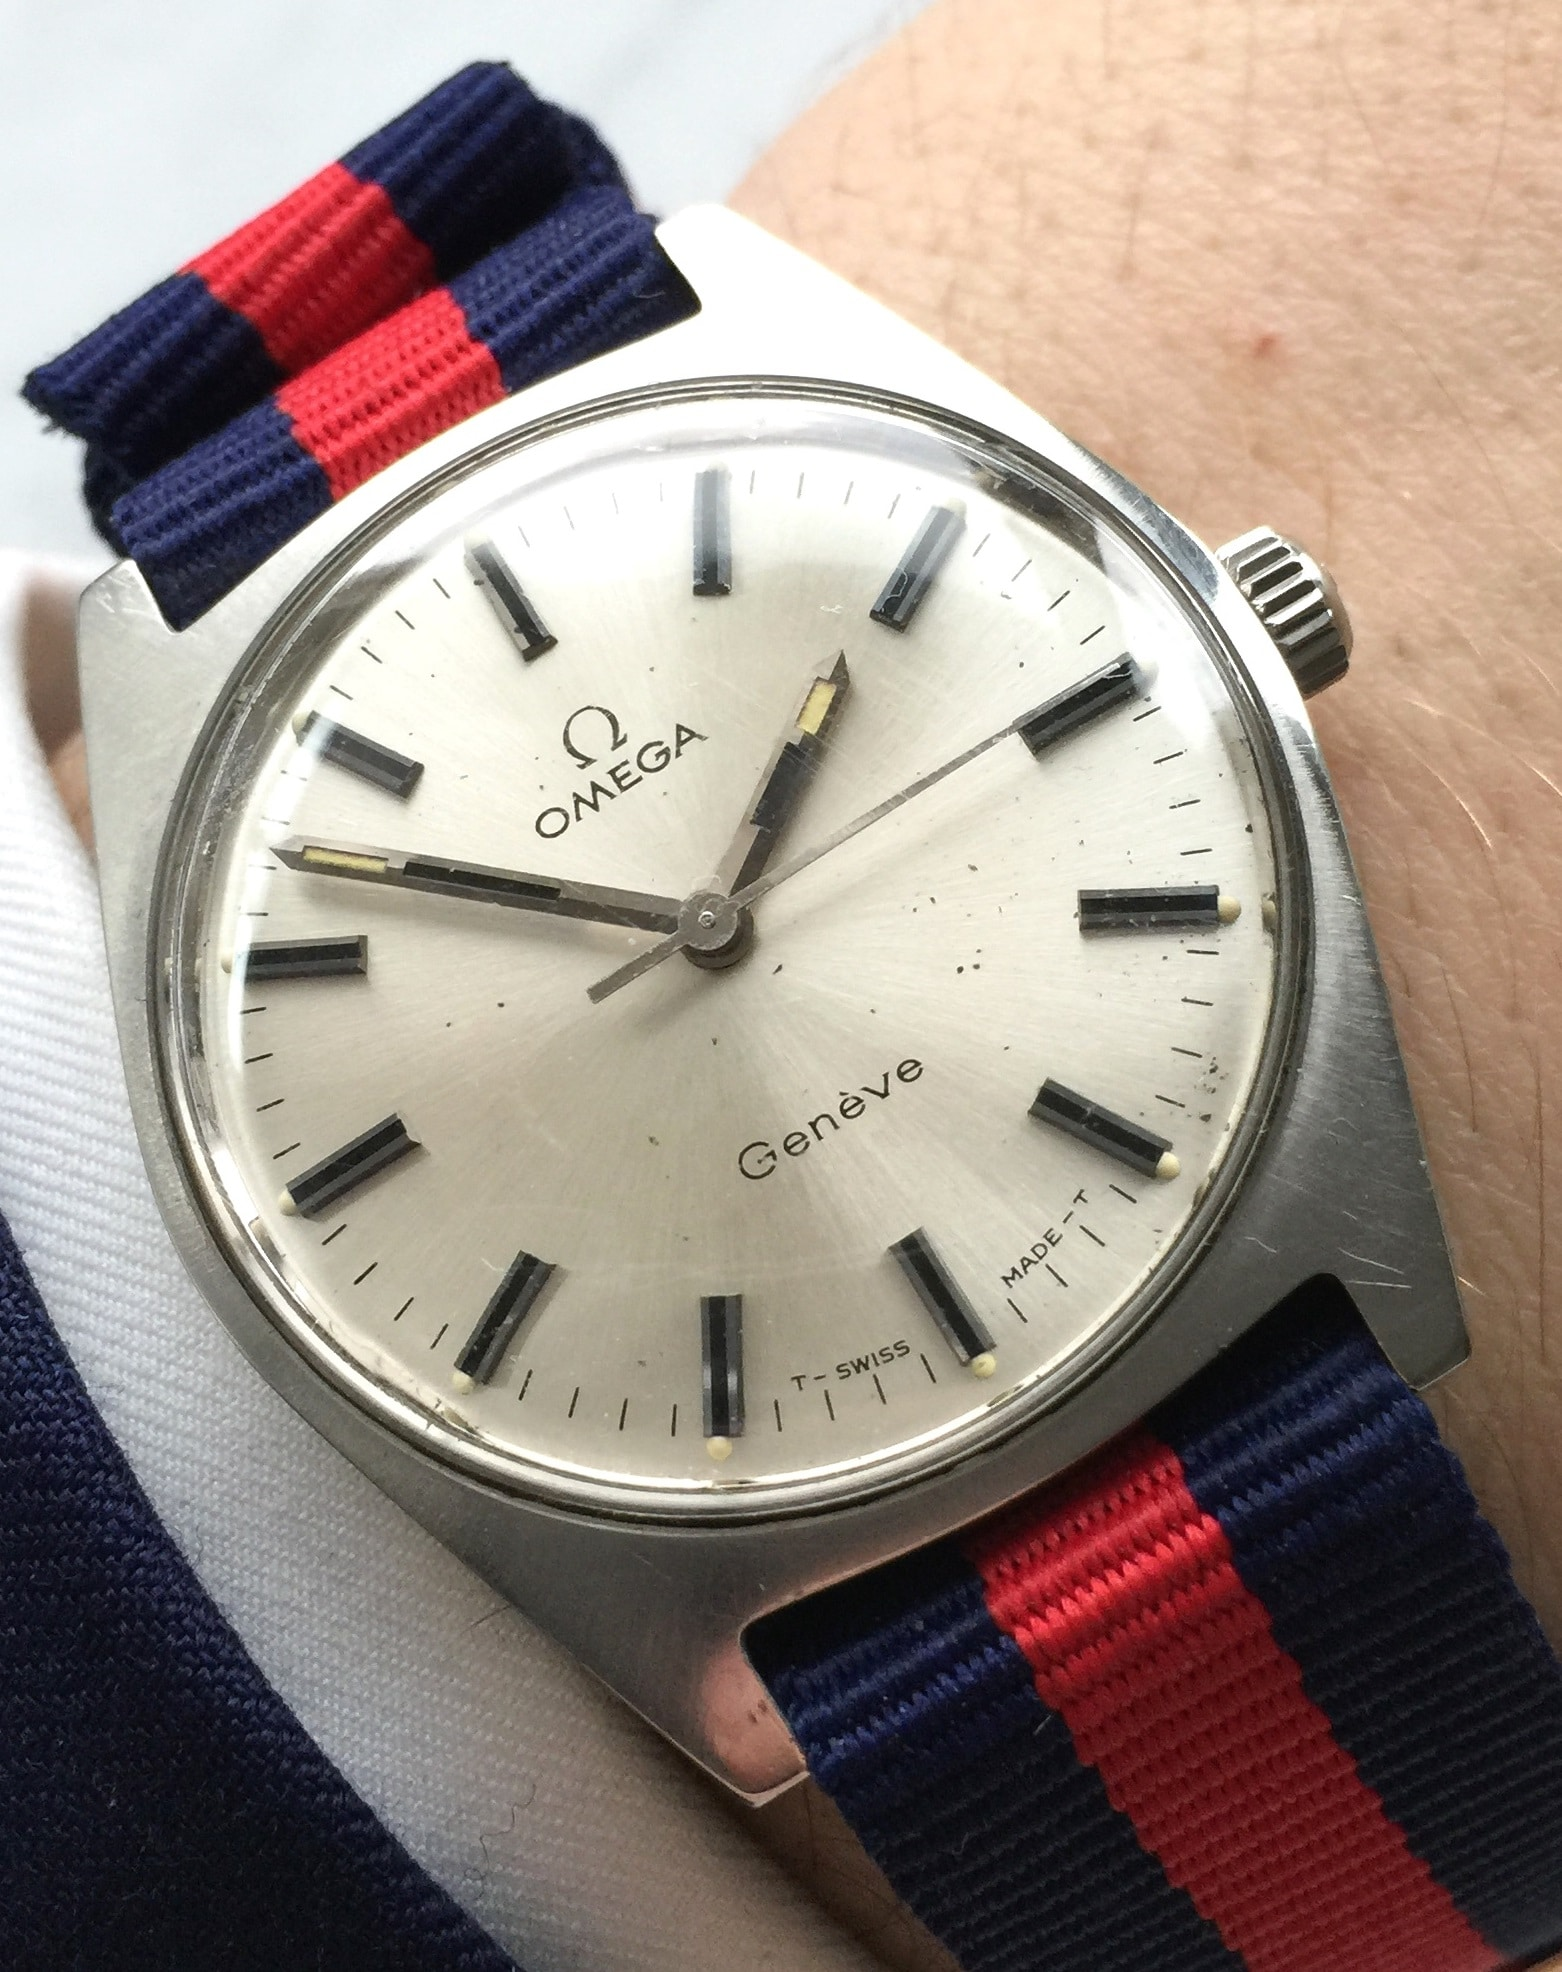 Beautiful Omega Geneve Steel with Nato Strap